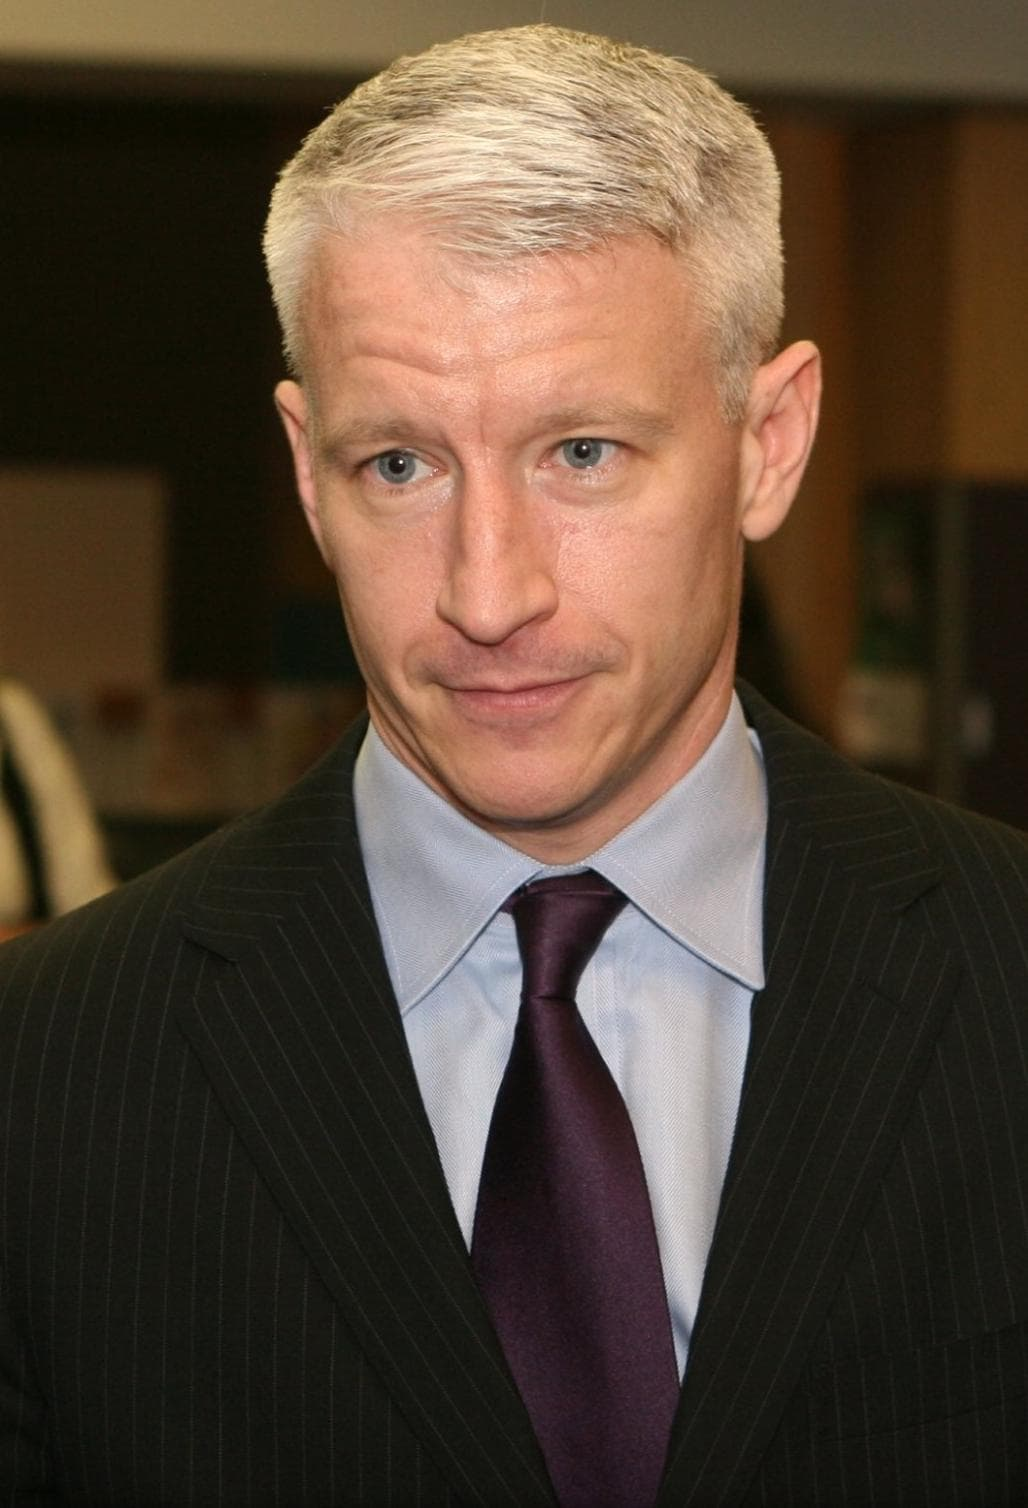 Anderson cooper is listed or ranked on the list members of vanderbilt also family names rh ranker